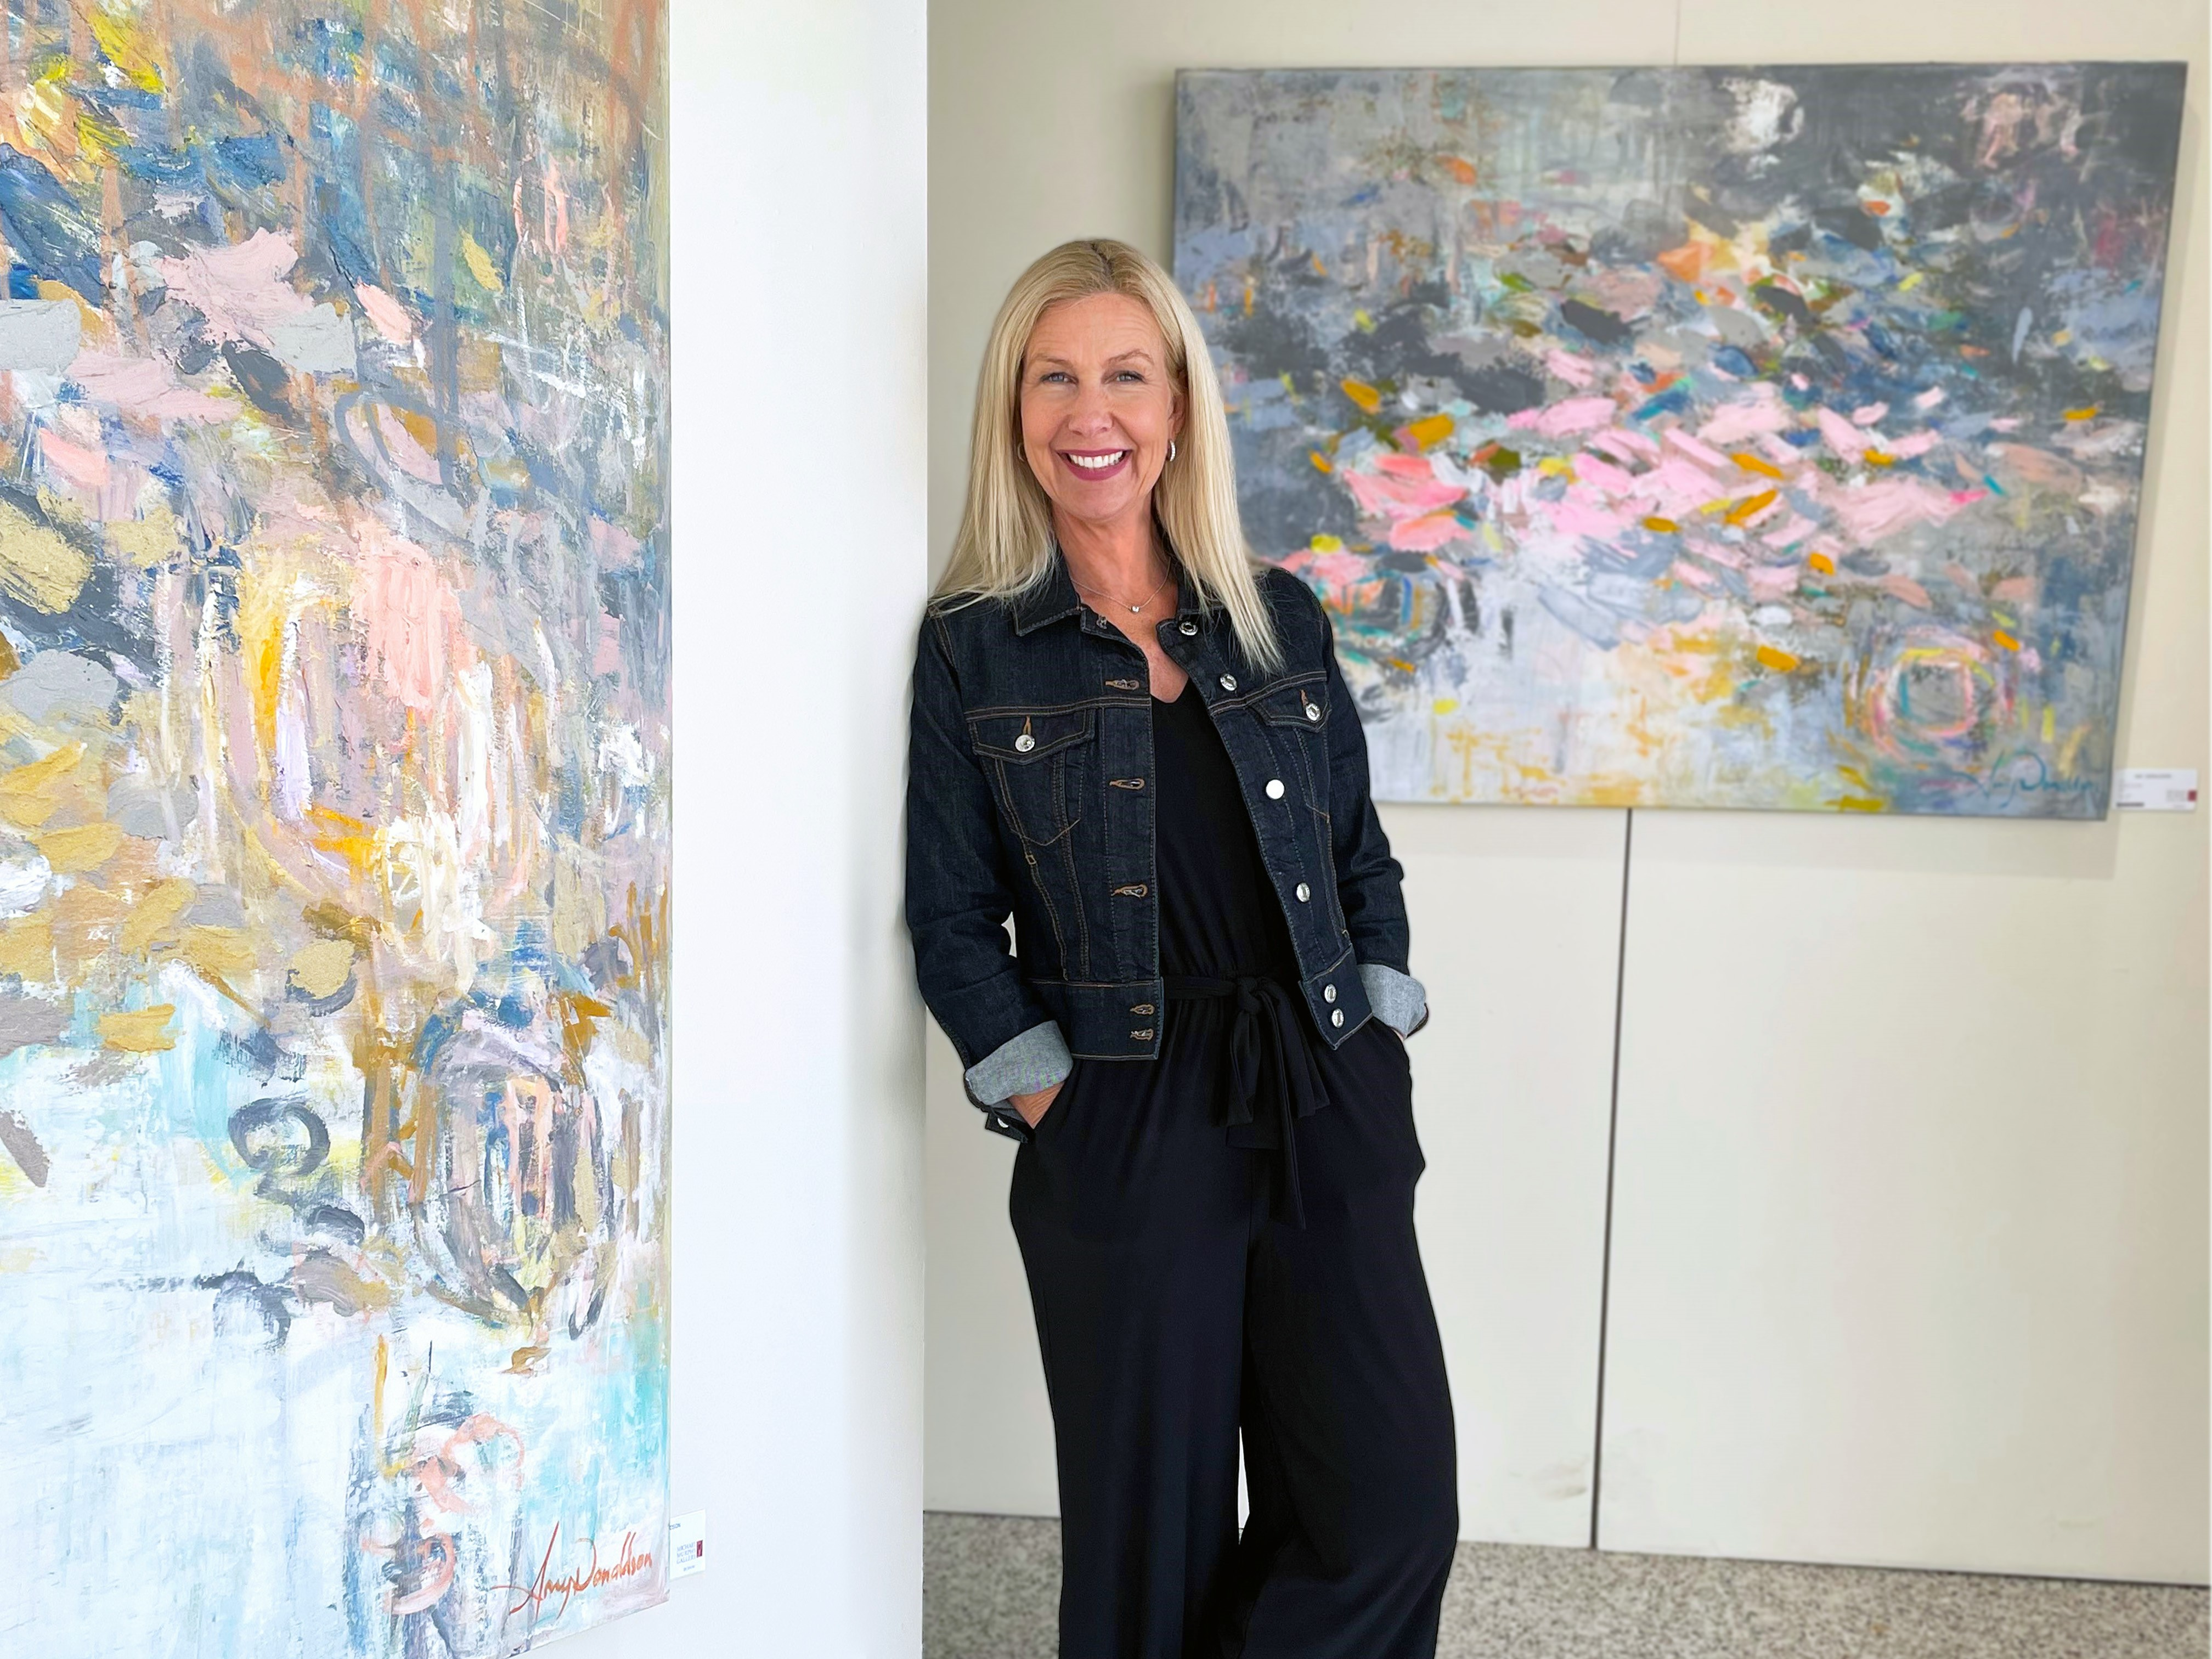 Gallery director Deana Buckley with abstract paintings